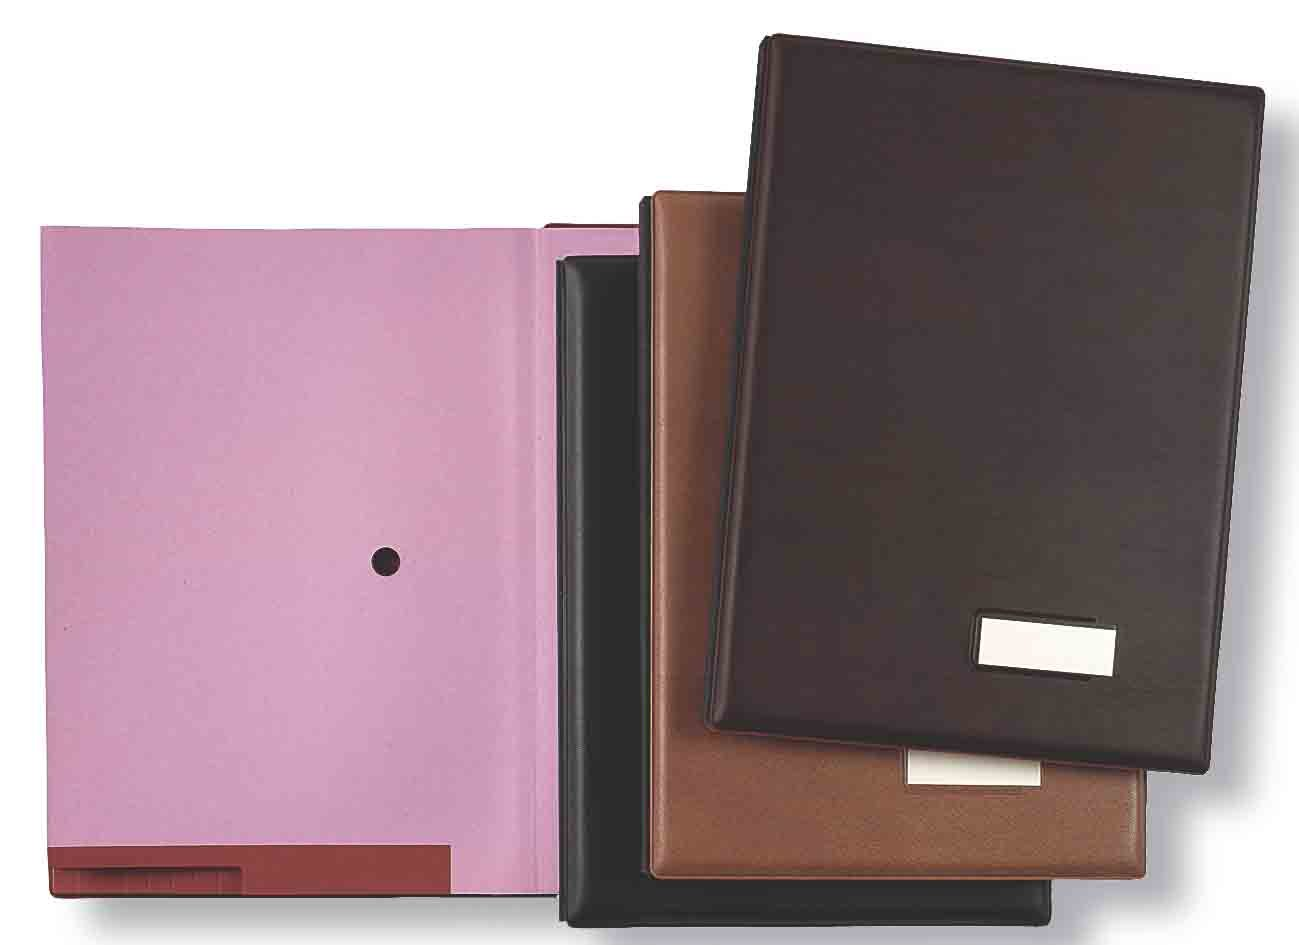 Pardo 87506–portafirmas with Cover Padded Leatherette, 18Compartments, Brown